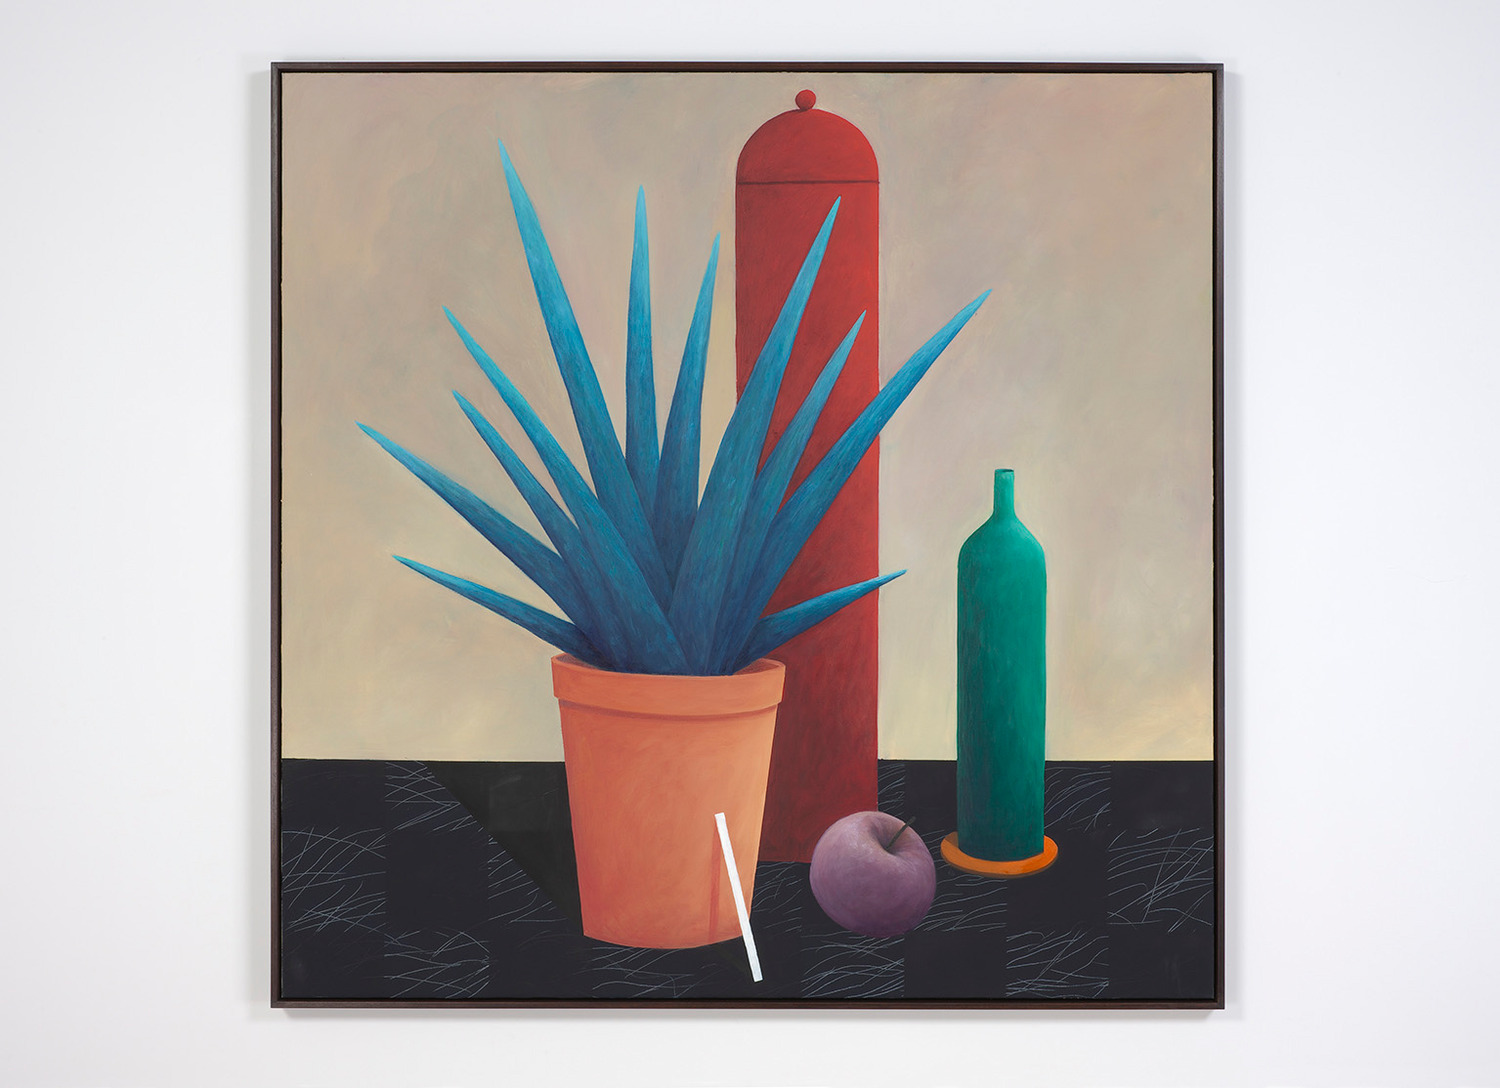 Nicolas Party, Still life with a bottle, 2012-2013, Oil on canvas, 164 x 164 x 5.5 cm